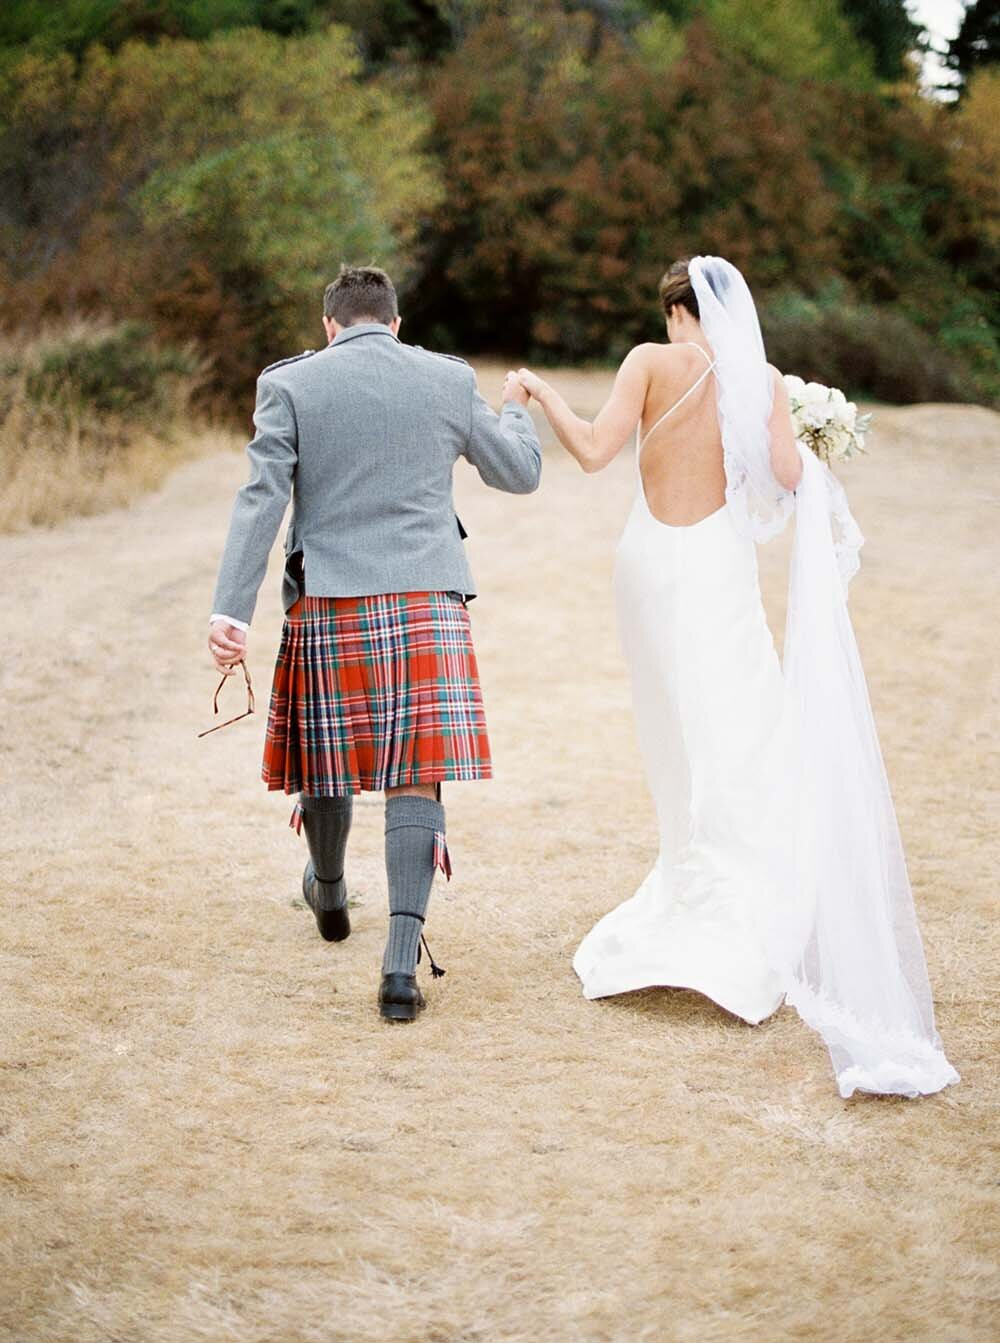 bride and groom facing away from the camera, walking away during the recessional, bride holding bouquet and groom in a kilt, holding hands with each other